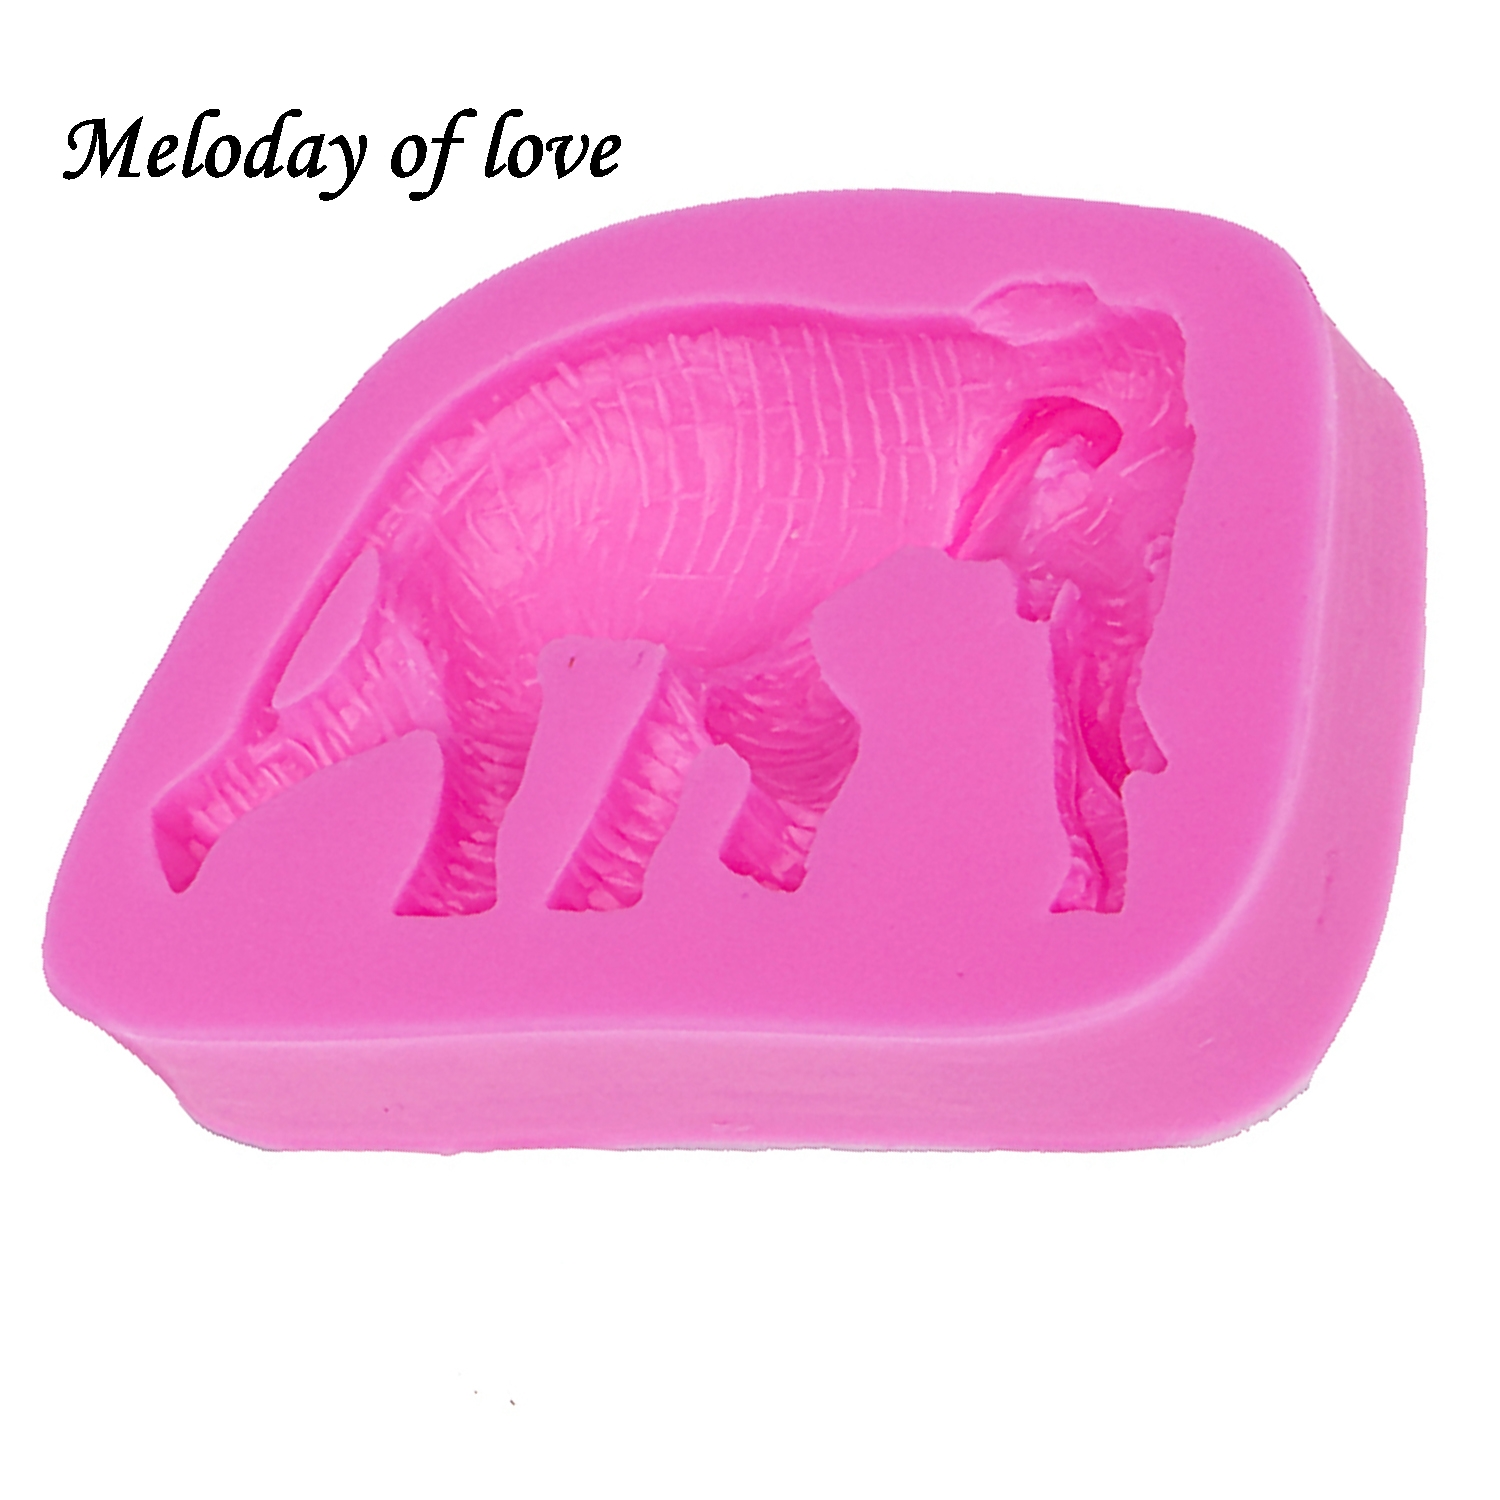 Animal soap mold chocolate Party DIY Elephant fondant cake decorating tools silicone mold dessert decorators moulds T0042 in Cake Molds from Home Garden